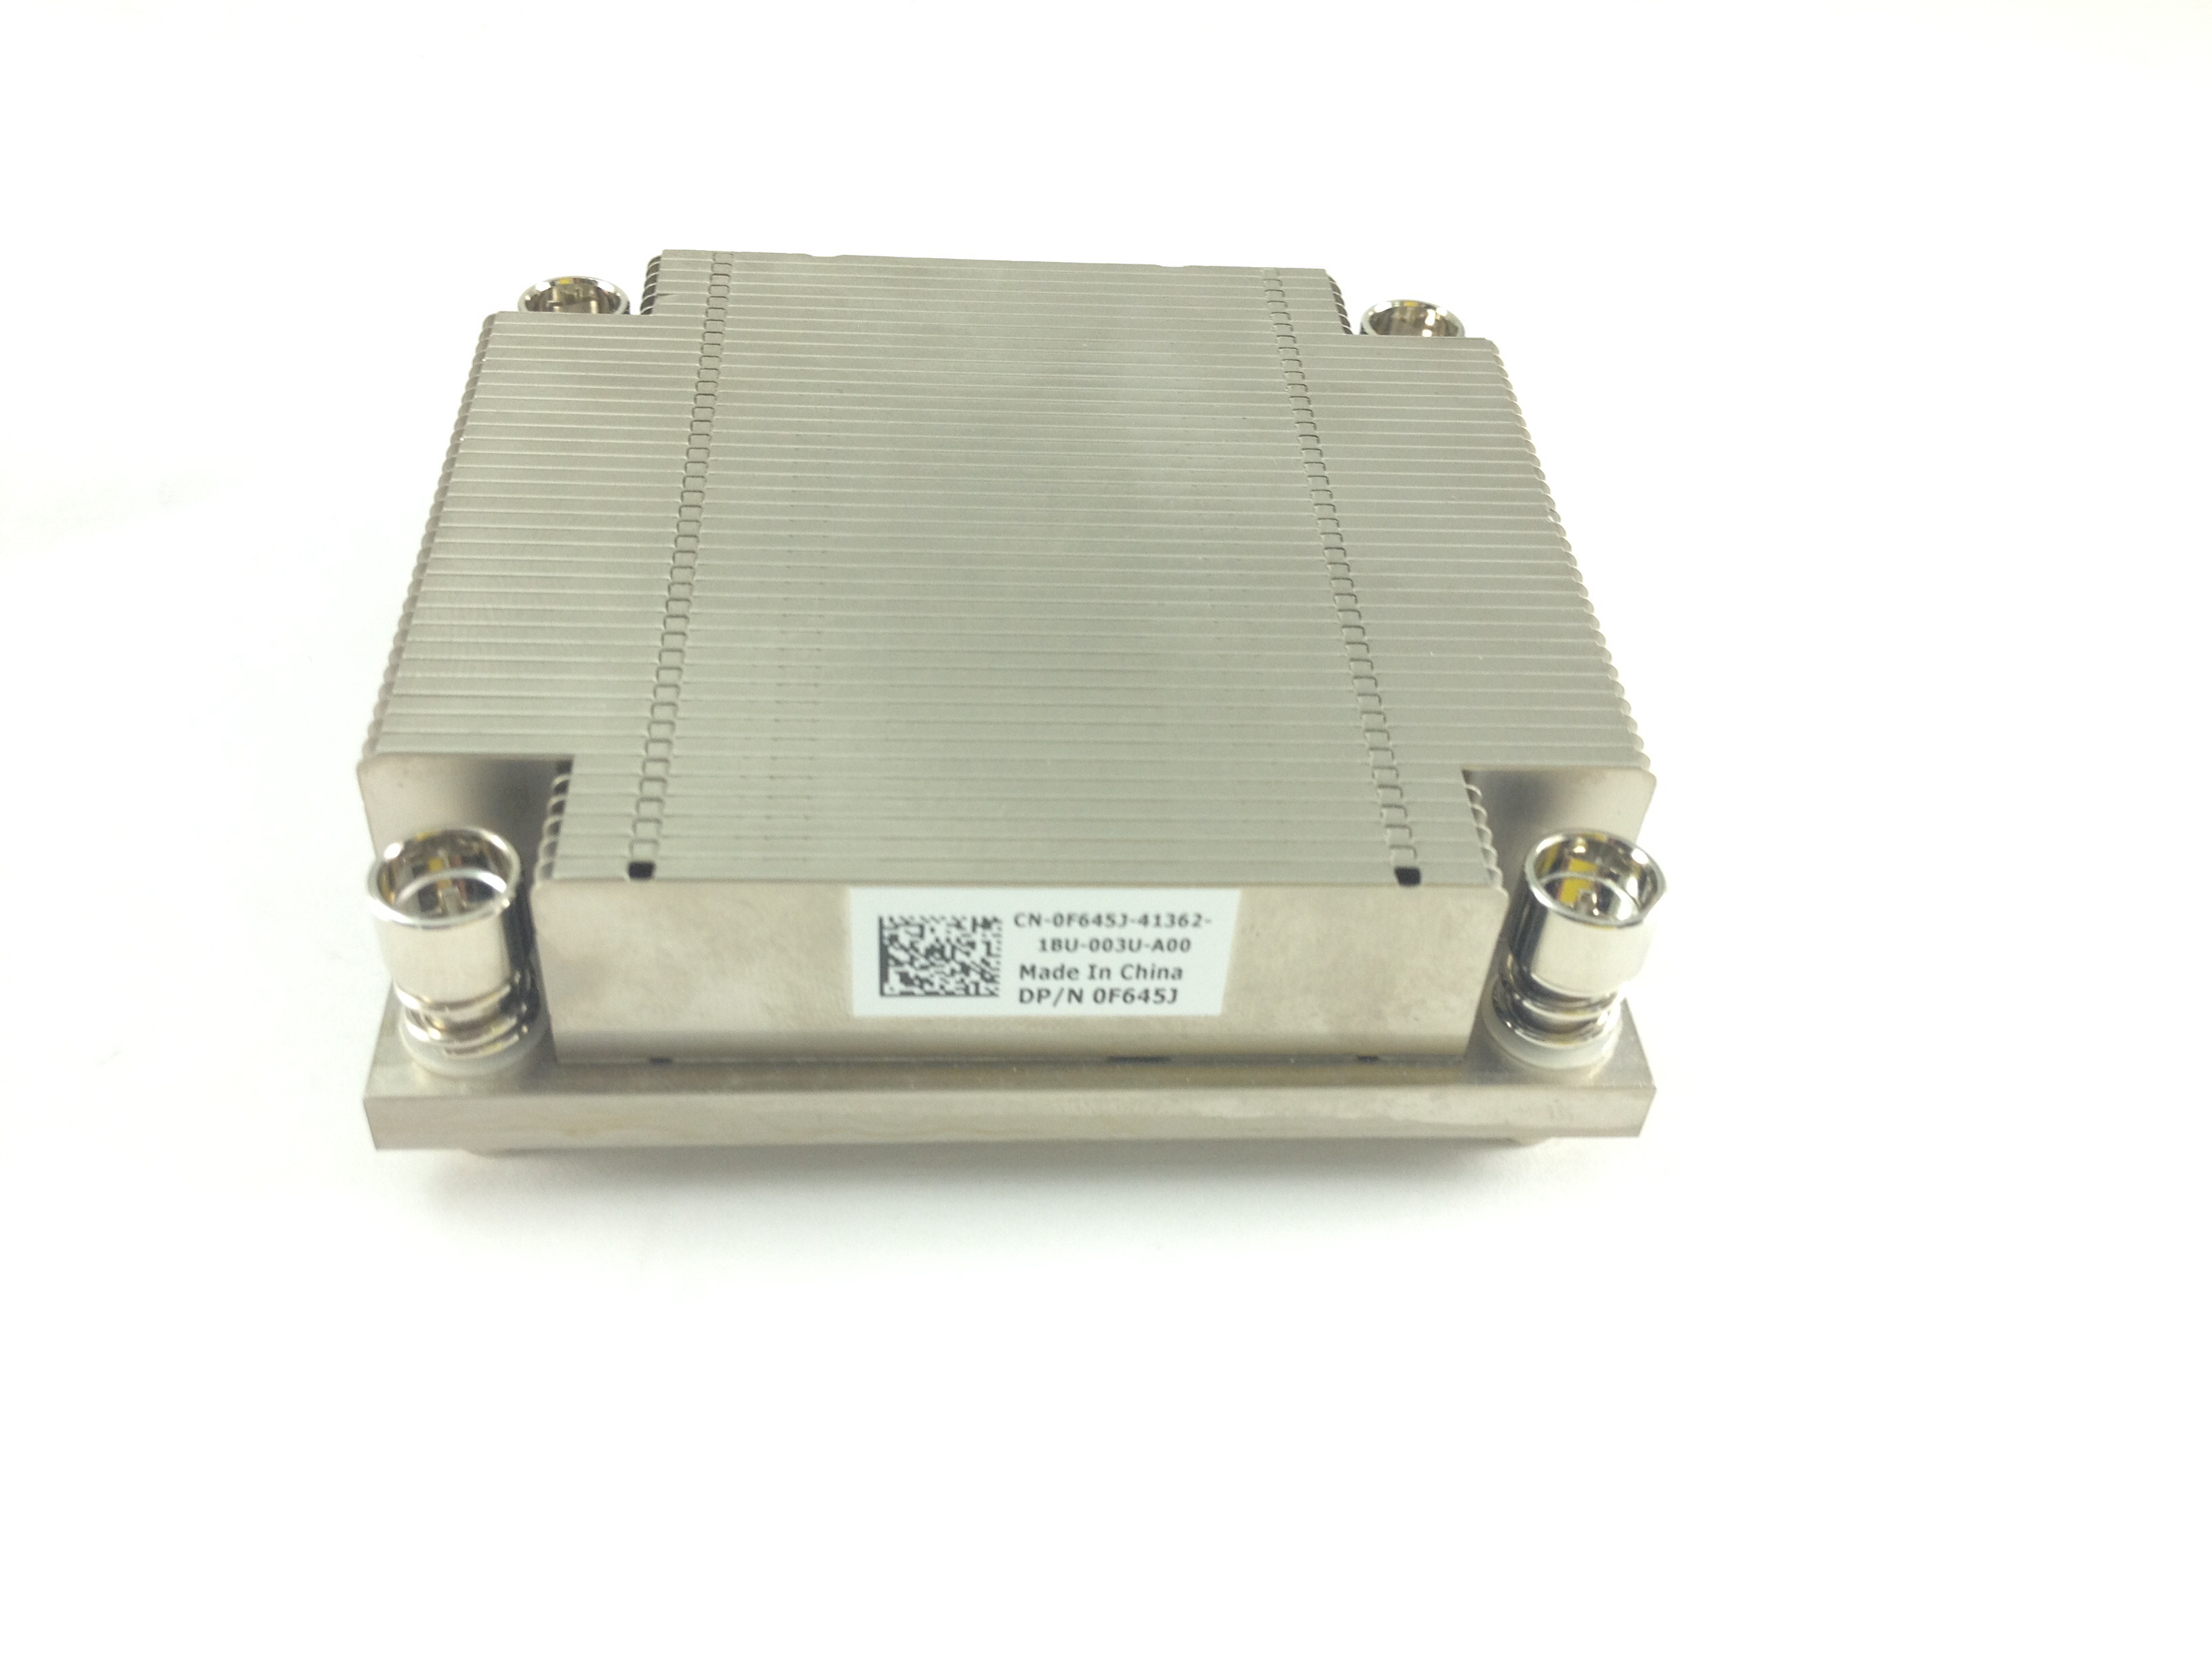 Dell PowerEdge R310 R410 Heatsink (F645J)